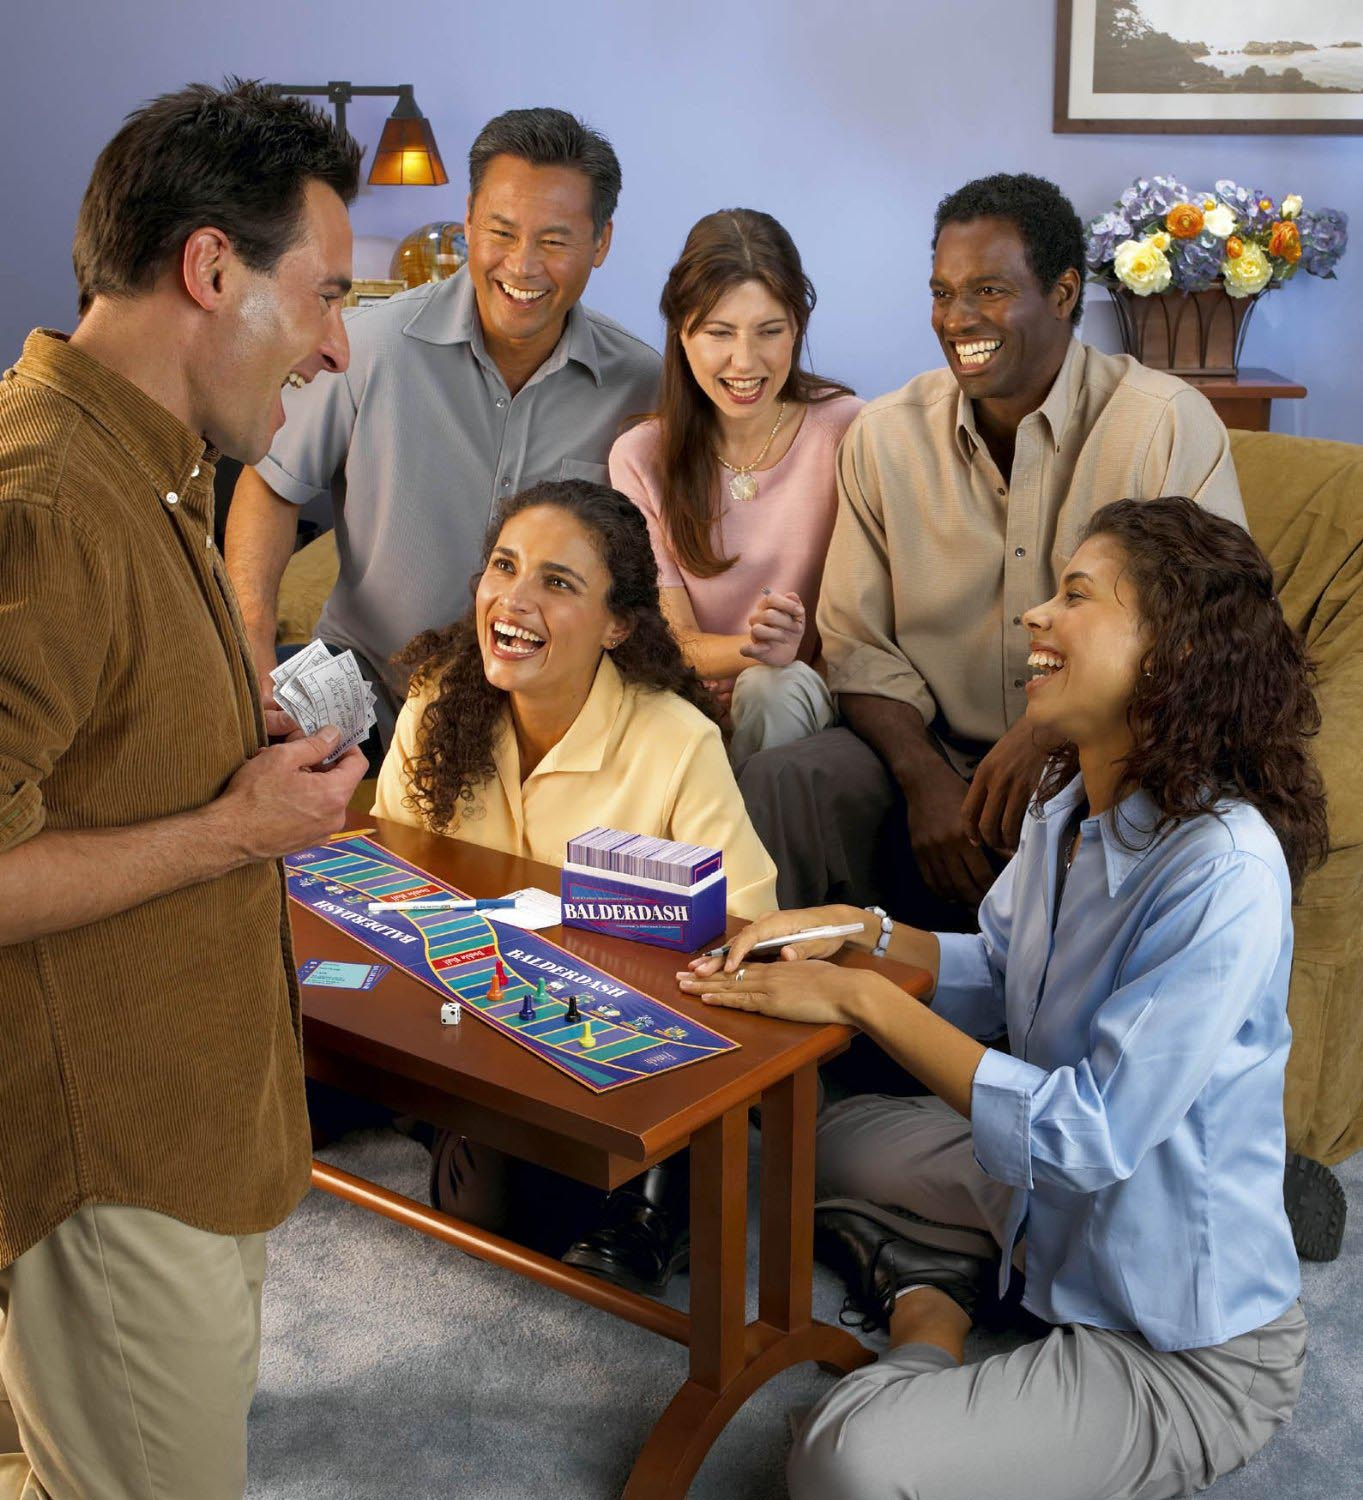 Party Game Ideas Adults